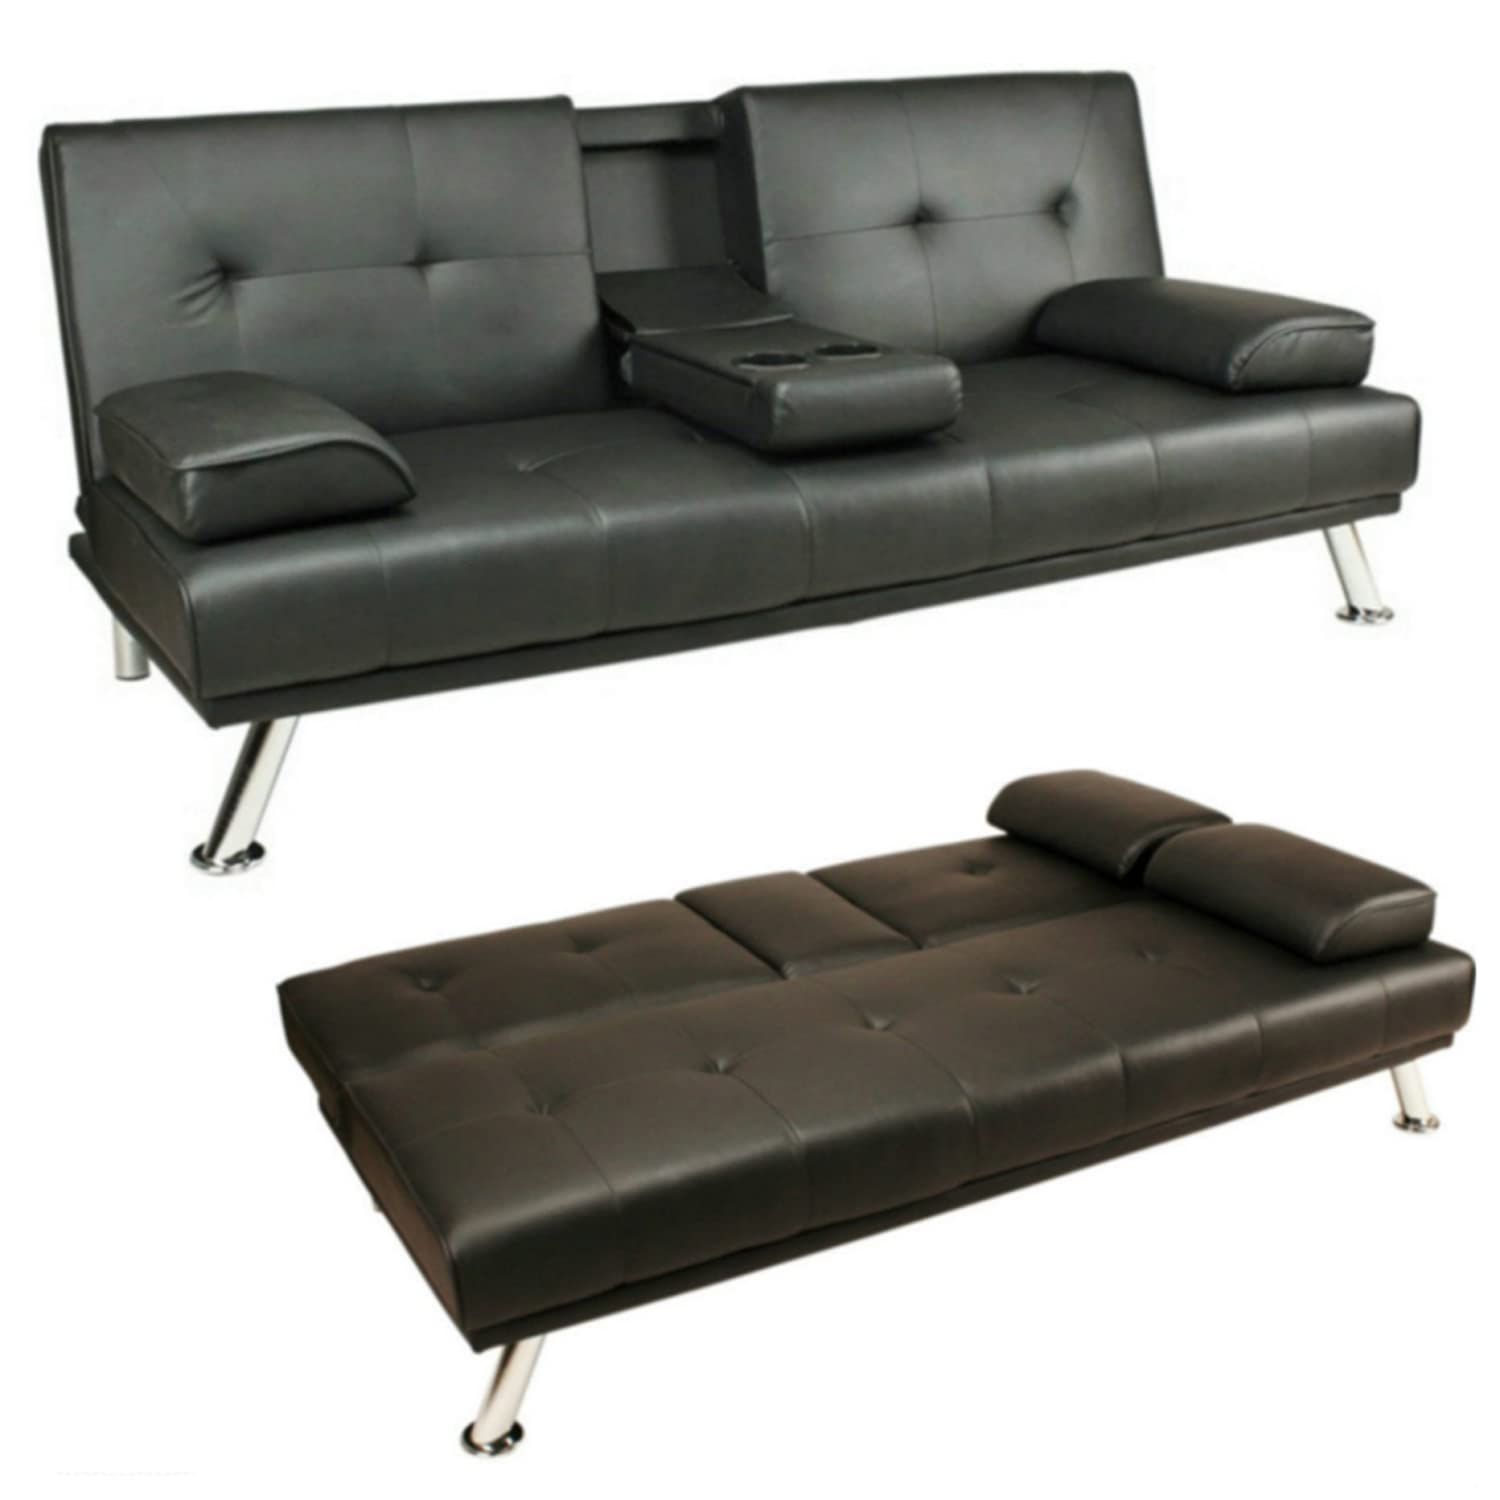 KENT 3 Seater Futon Sofa Bed in Faux Leather Black Amazon